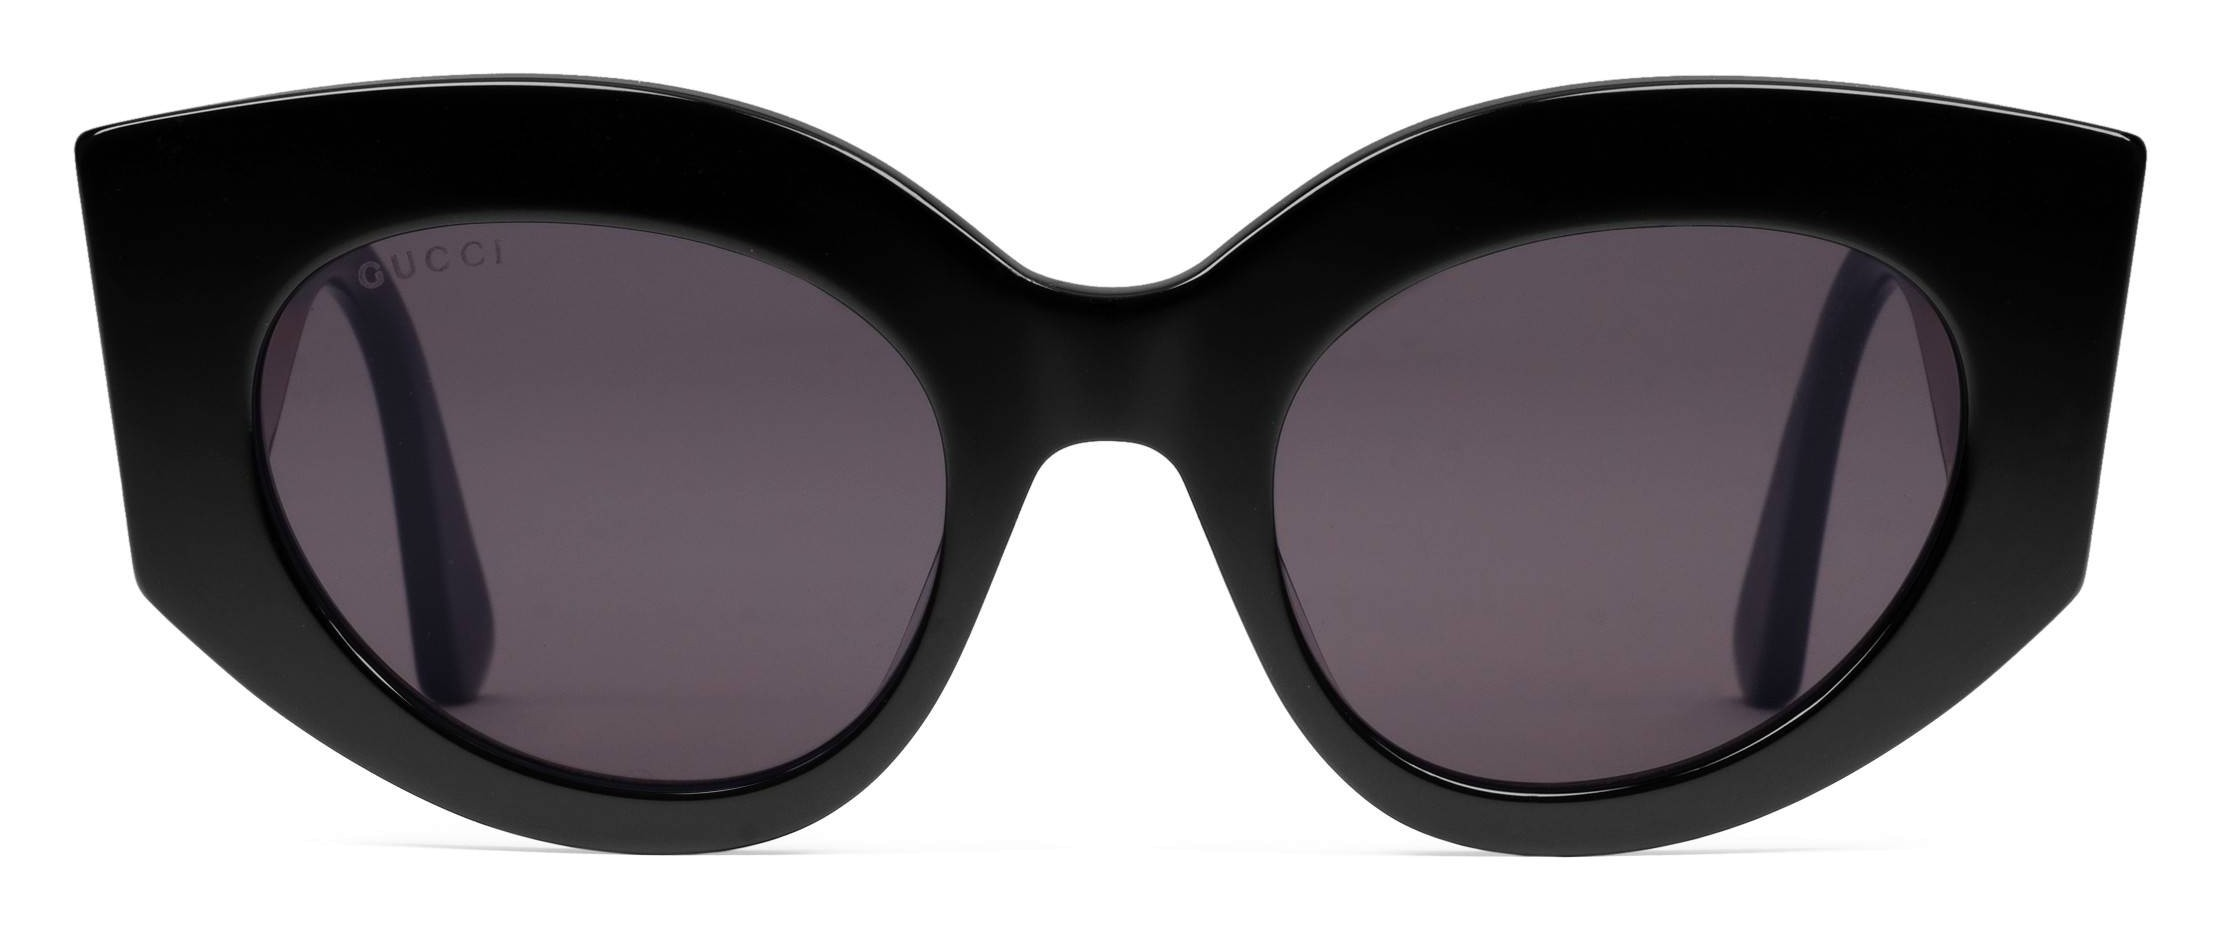 6848ff7ff89 Oversized Cat Eye Acetate Sunglasses Gucci - Image Of Glasses